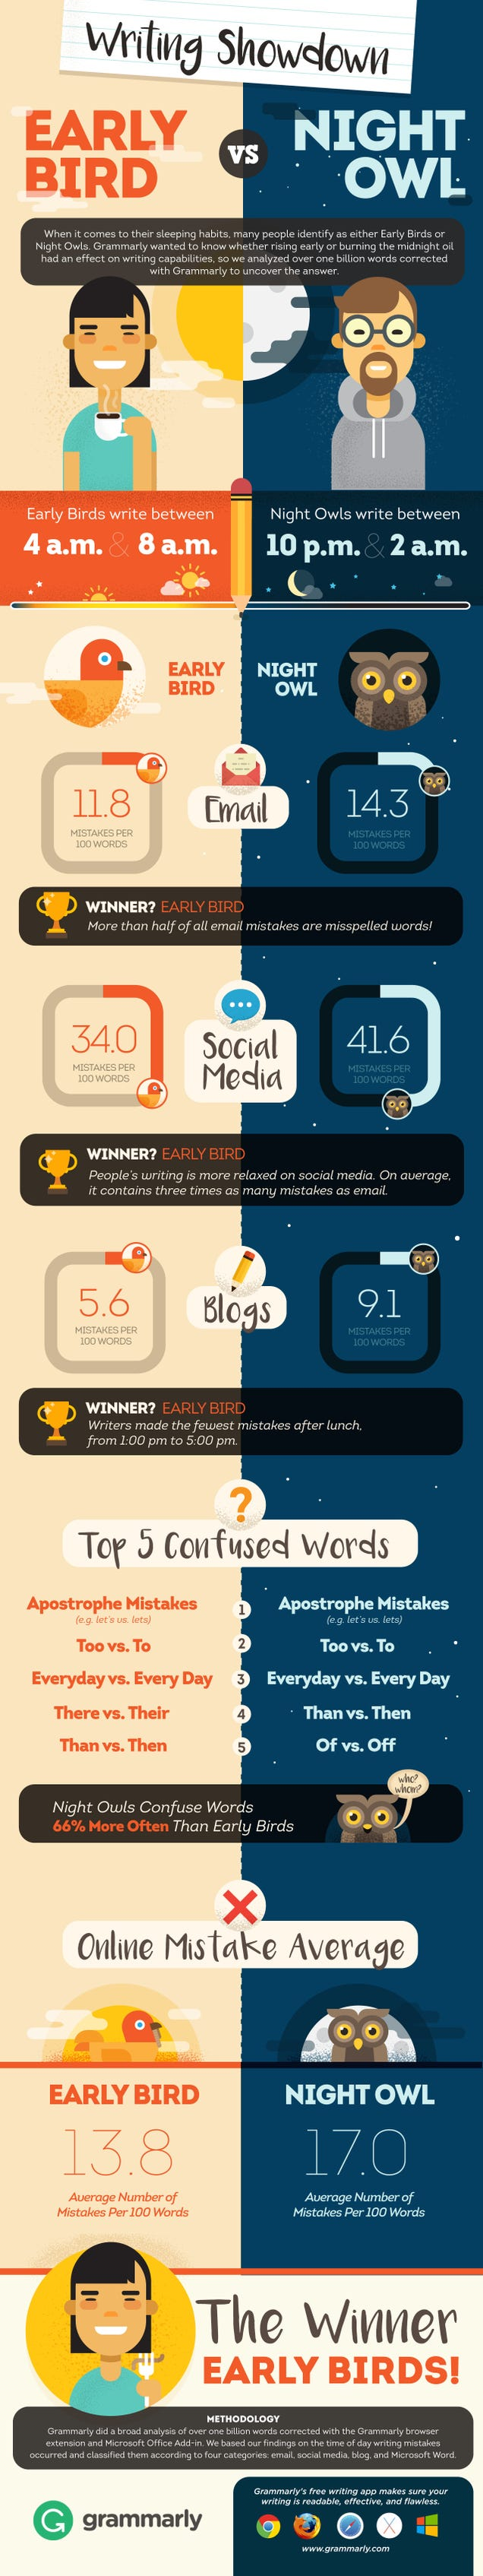 You're Far More Likely to Make Writing Mistakes Late at Night